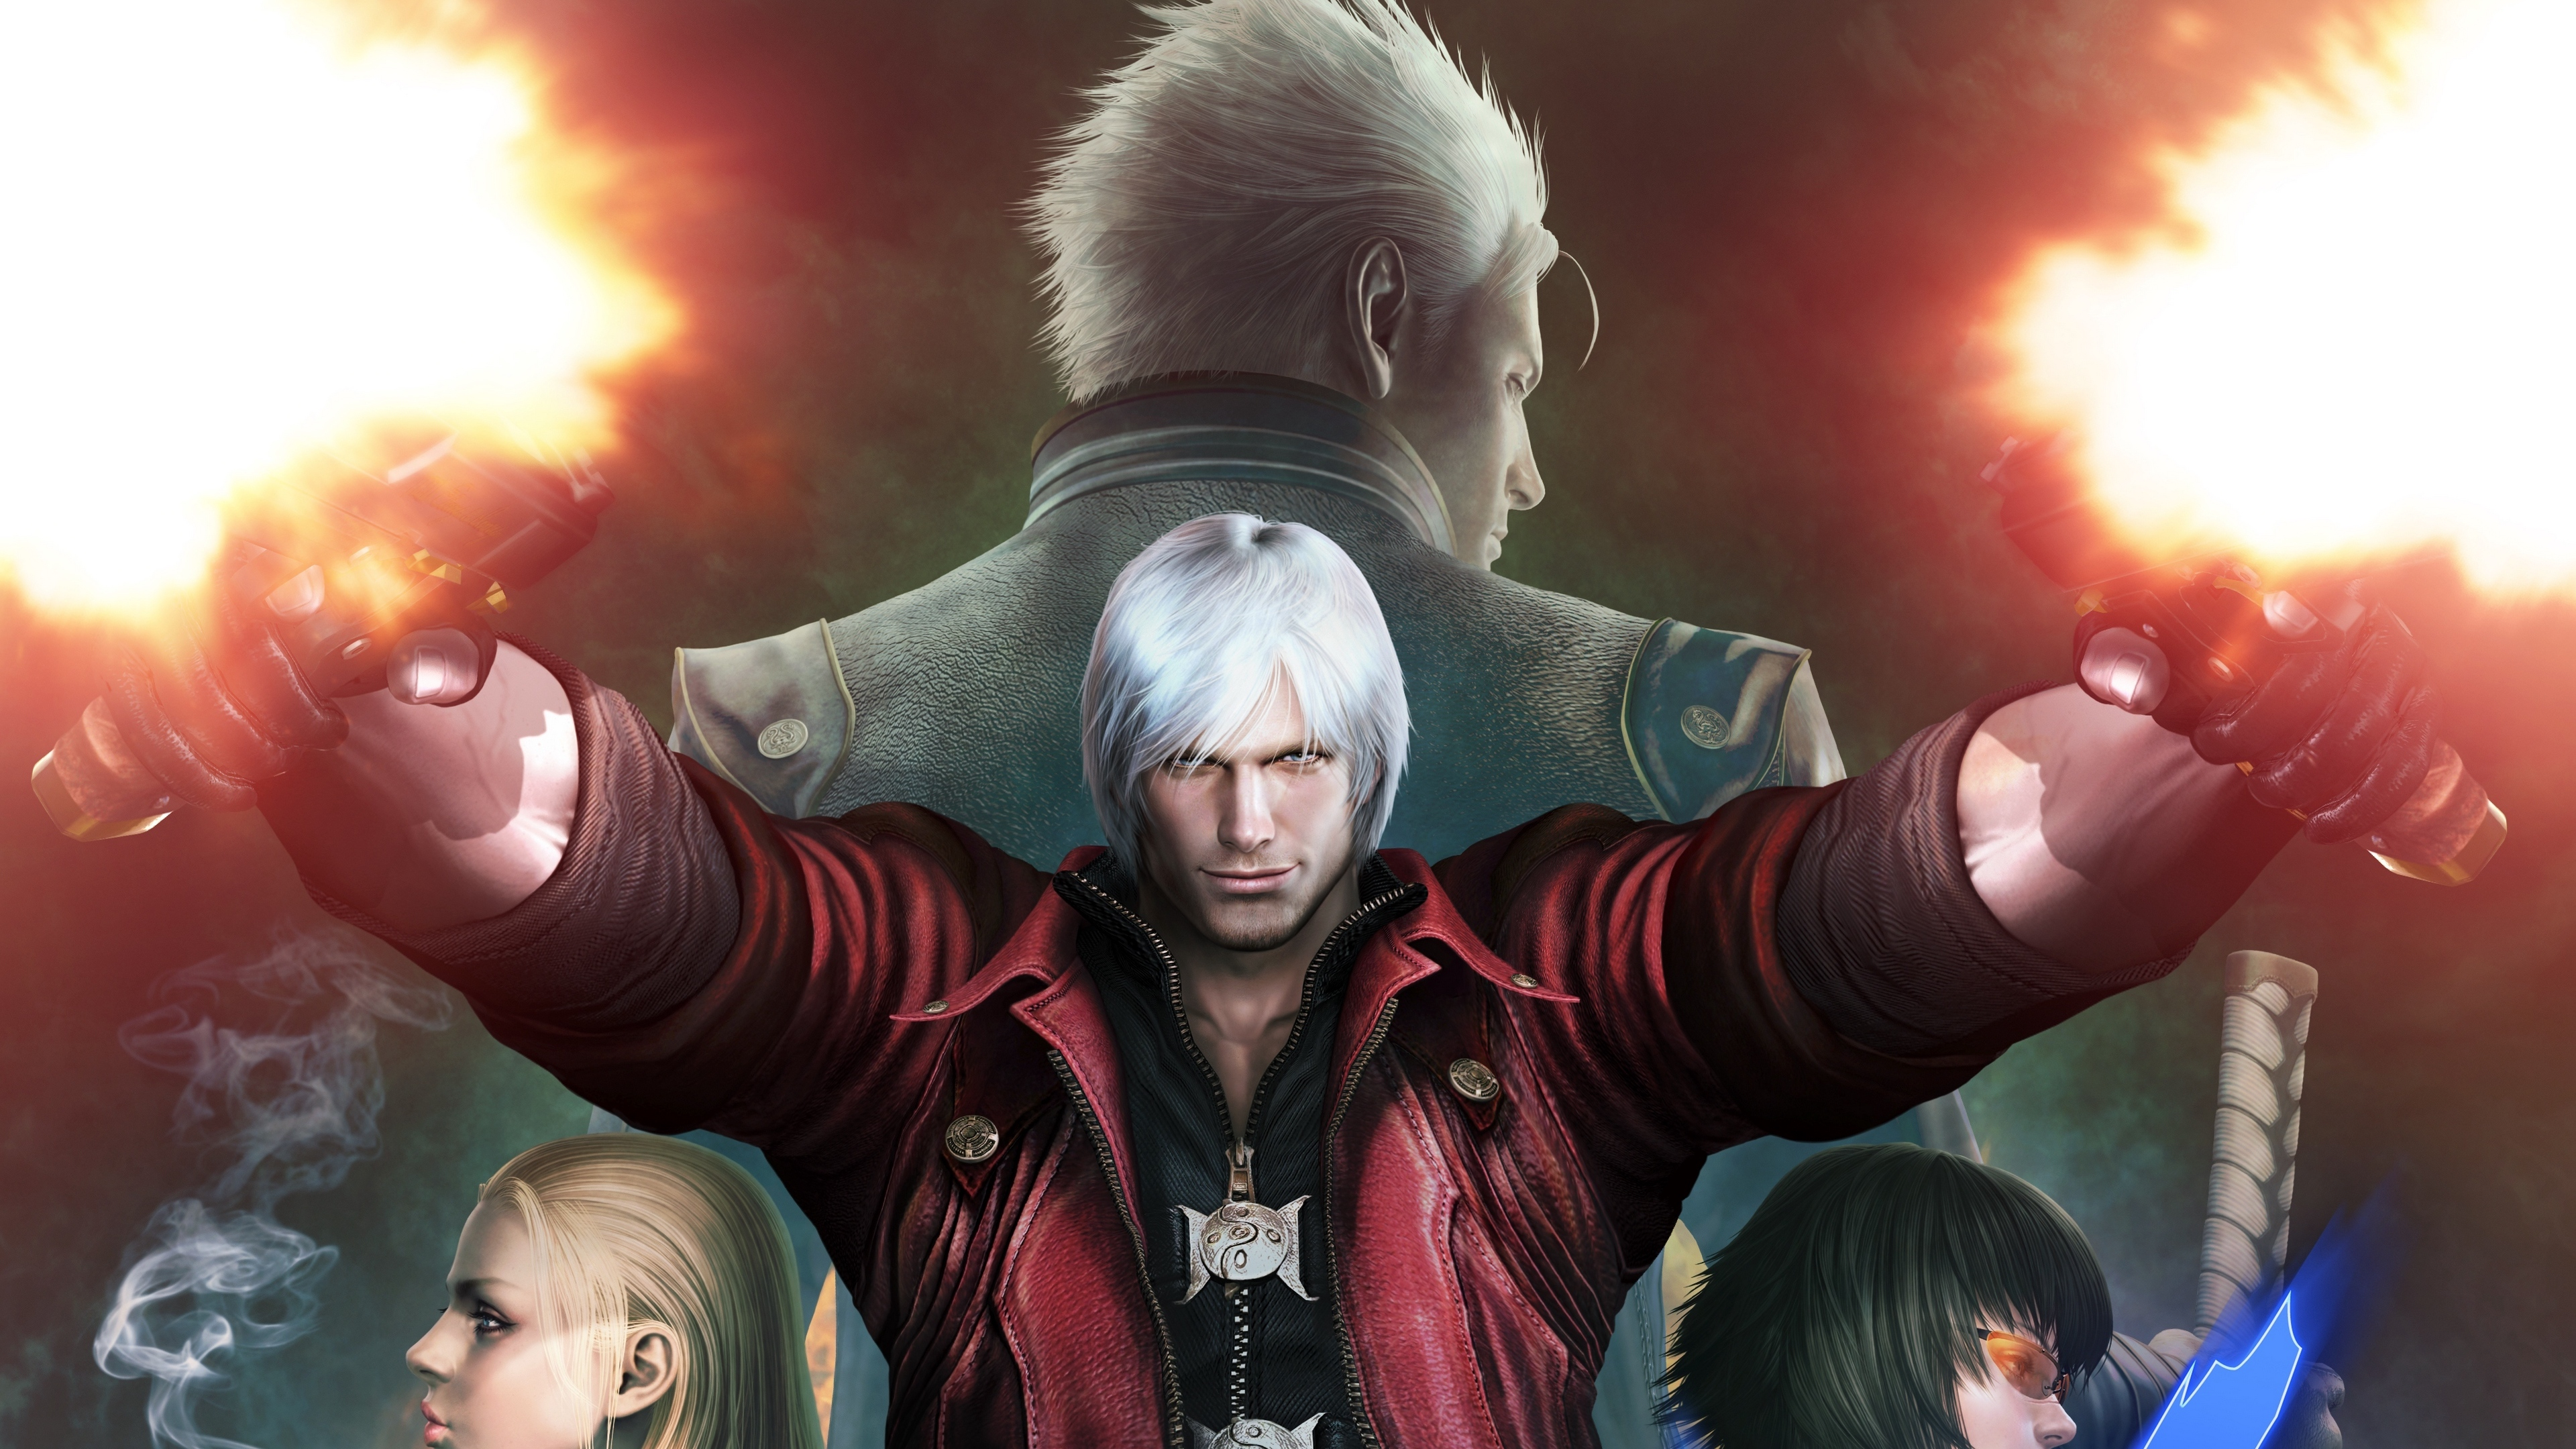 devil may cry vergil mary dante trish 4k 1538944815 - devil may cry, vergil, mary, dante, trish 4k - vergil, Mary, devil may cry